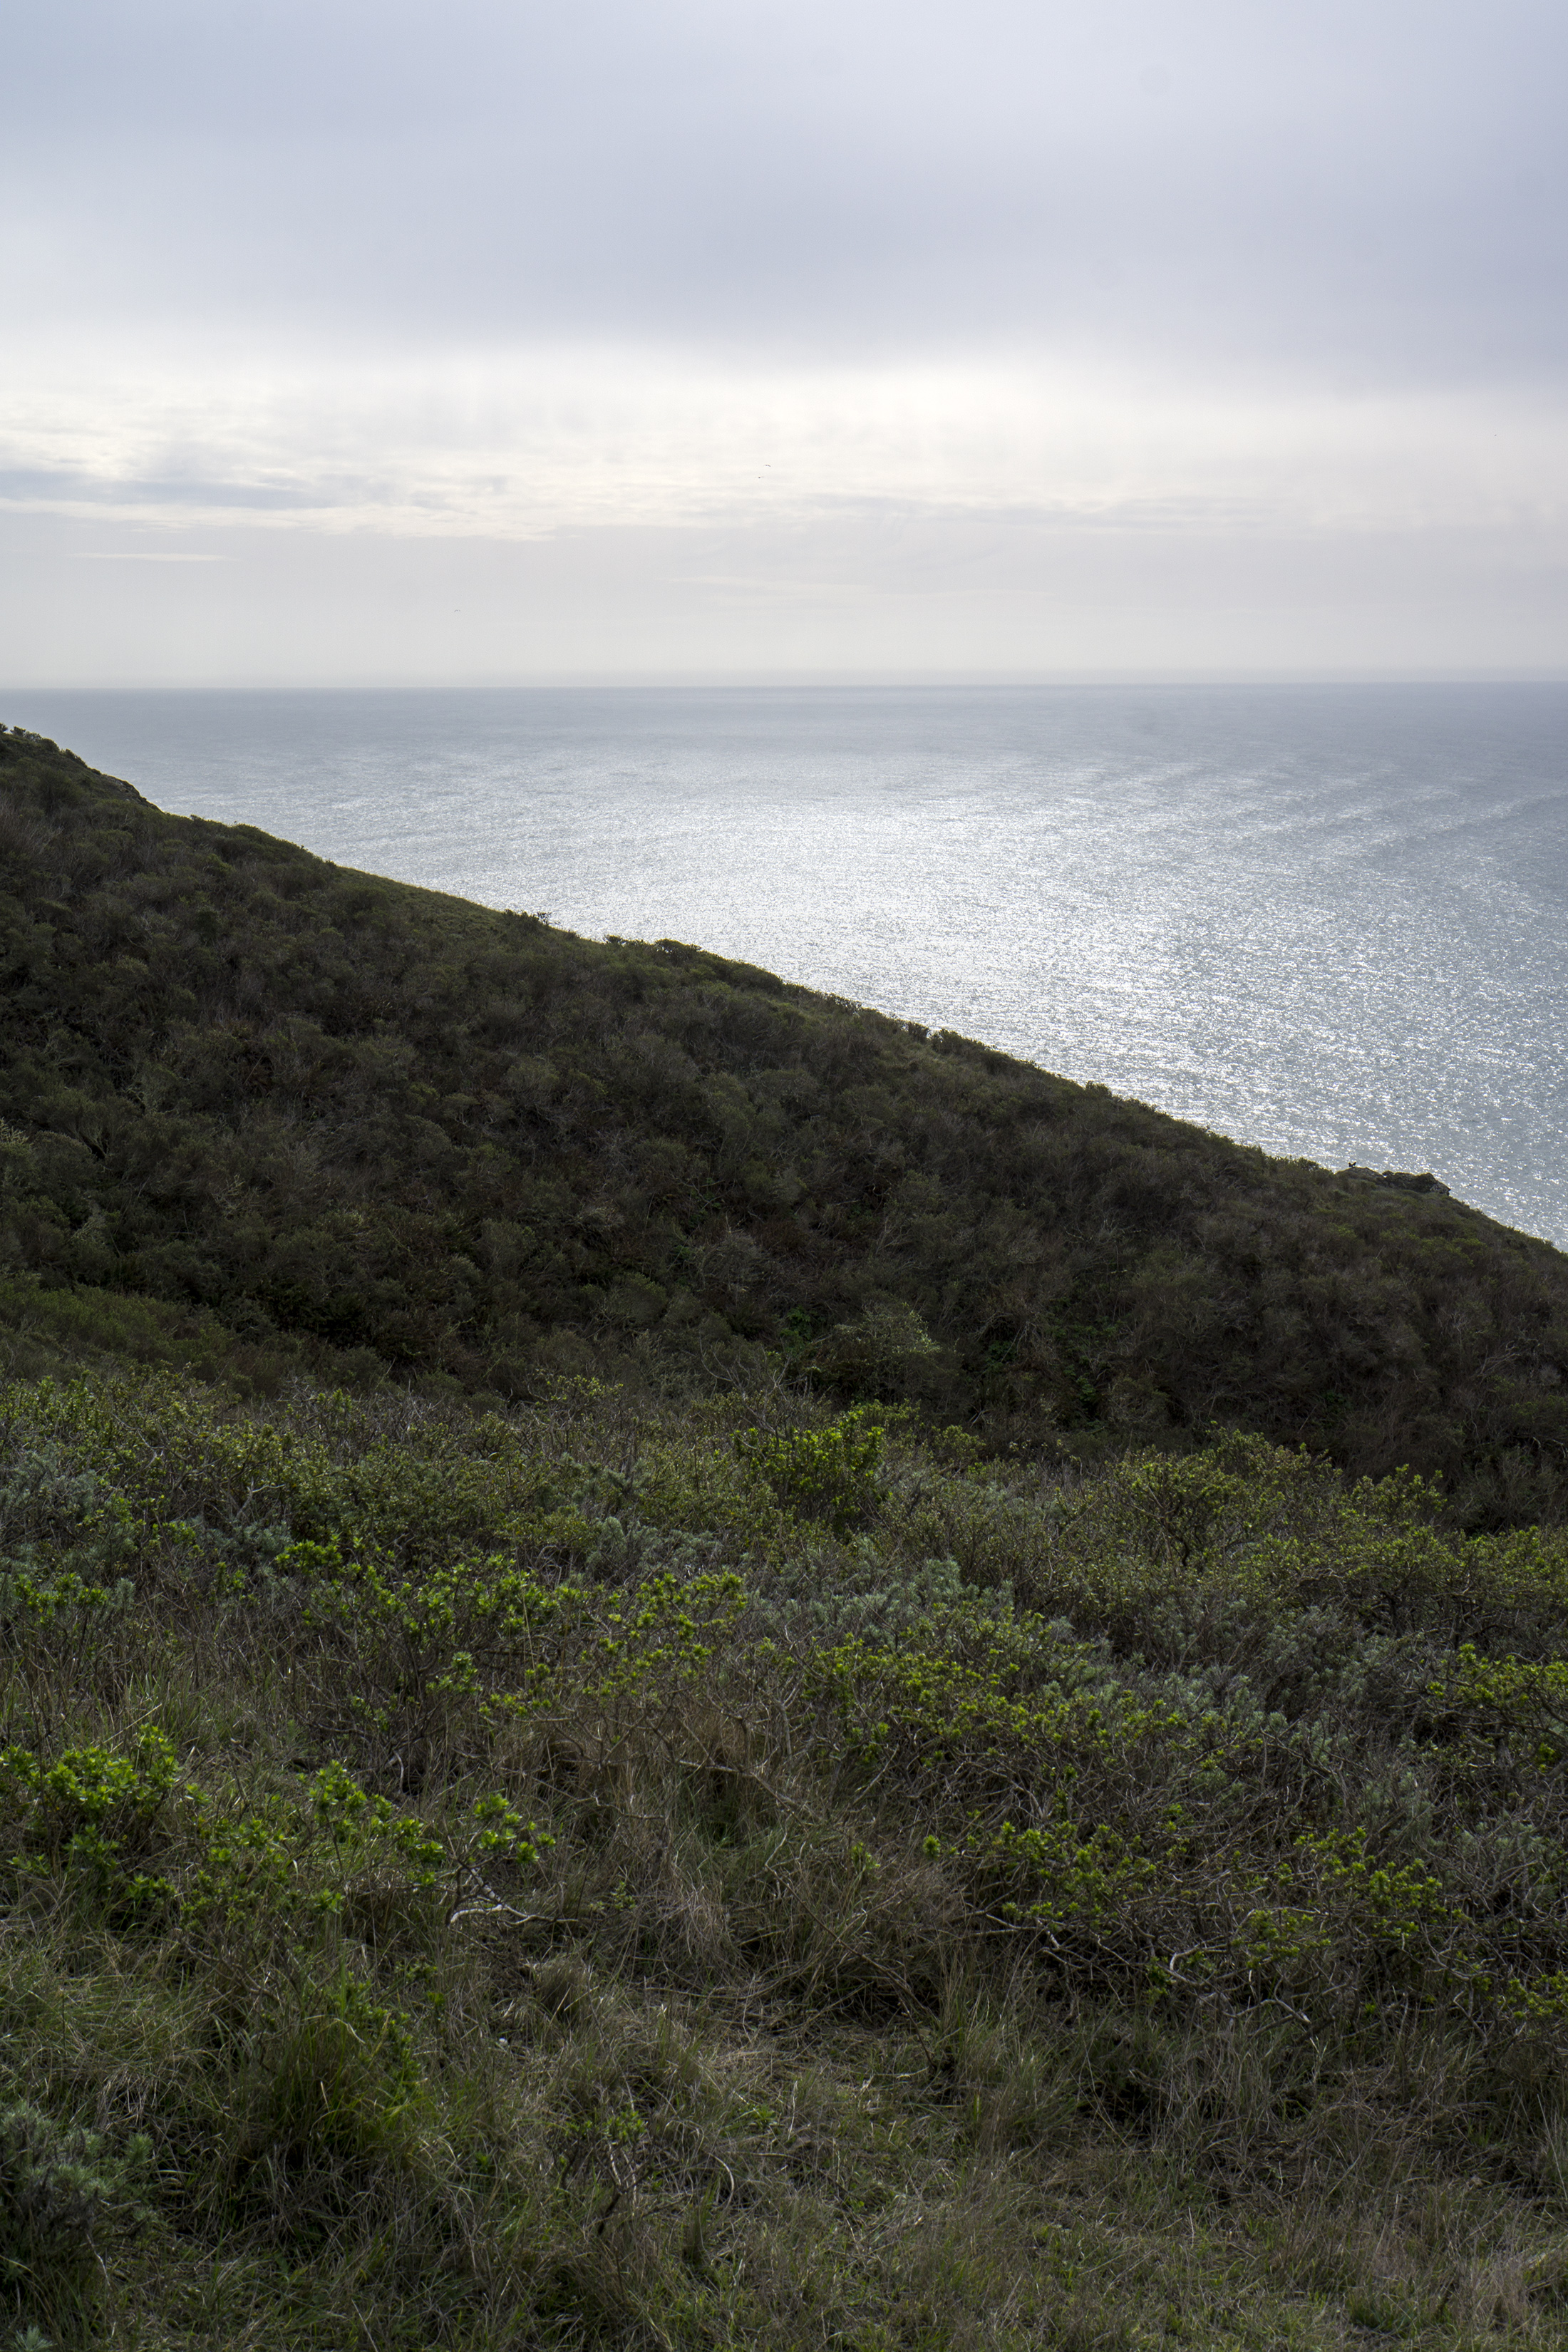 Pacific Ocean along Tennessee Valley Trail, Marin Headlands, Golden Gate National Recreation Area / Darker than Green